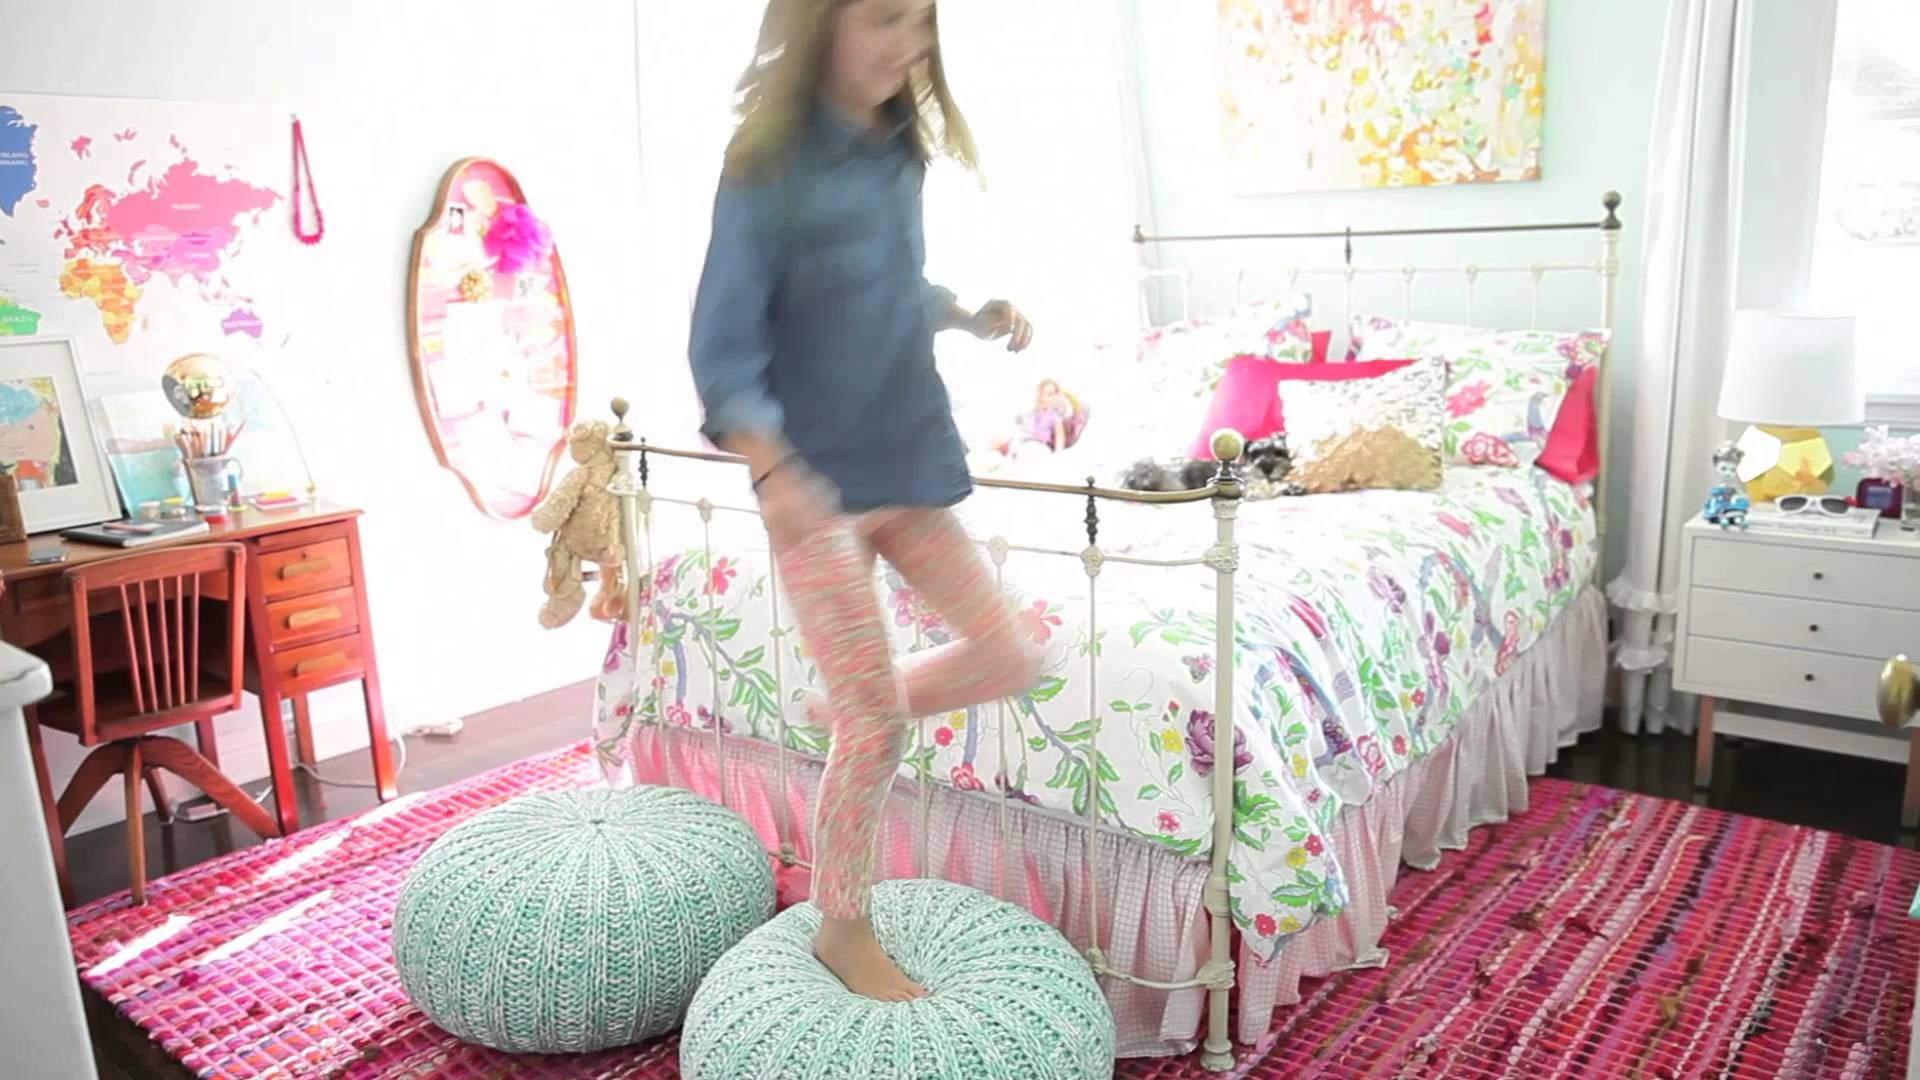 Cool Stuff Your Room Girls Style Youtube